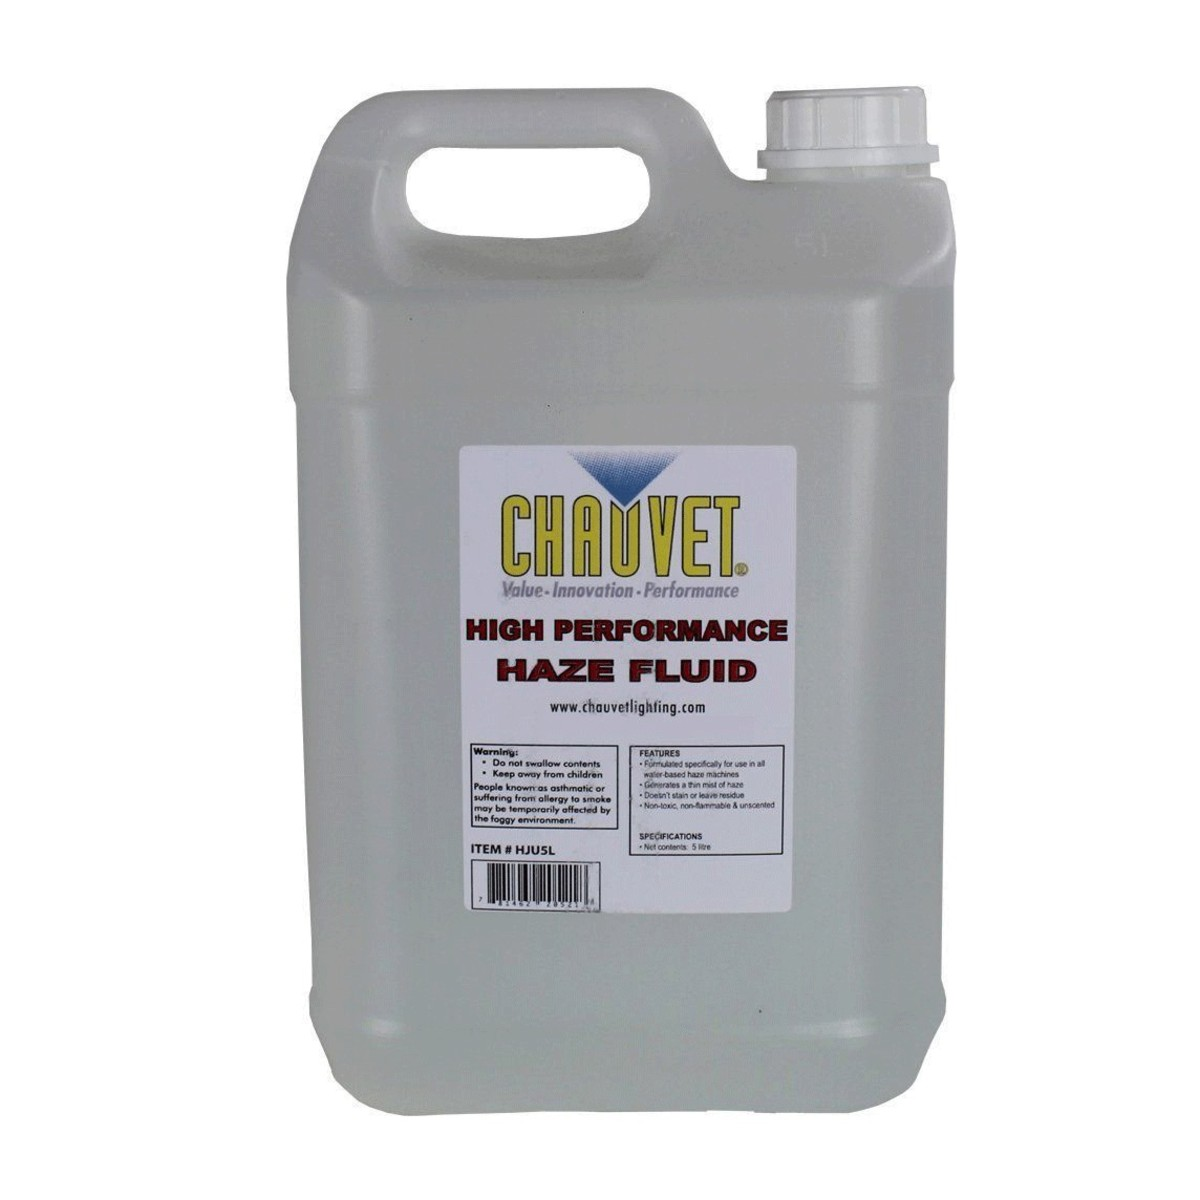 5l Chauvet High Performance Haze Fluid